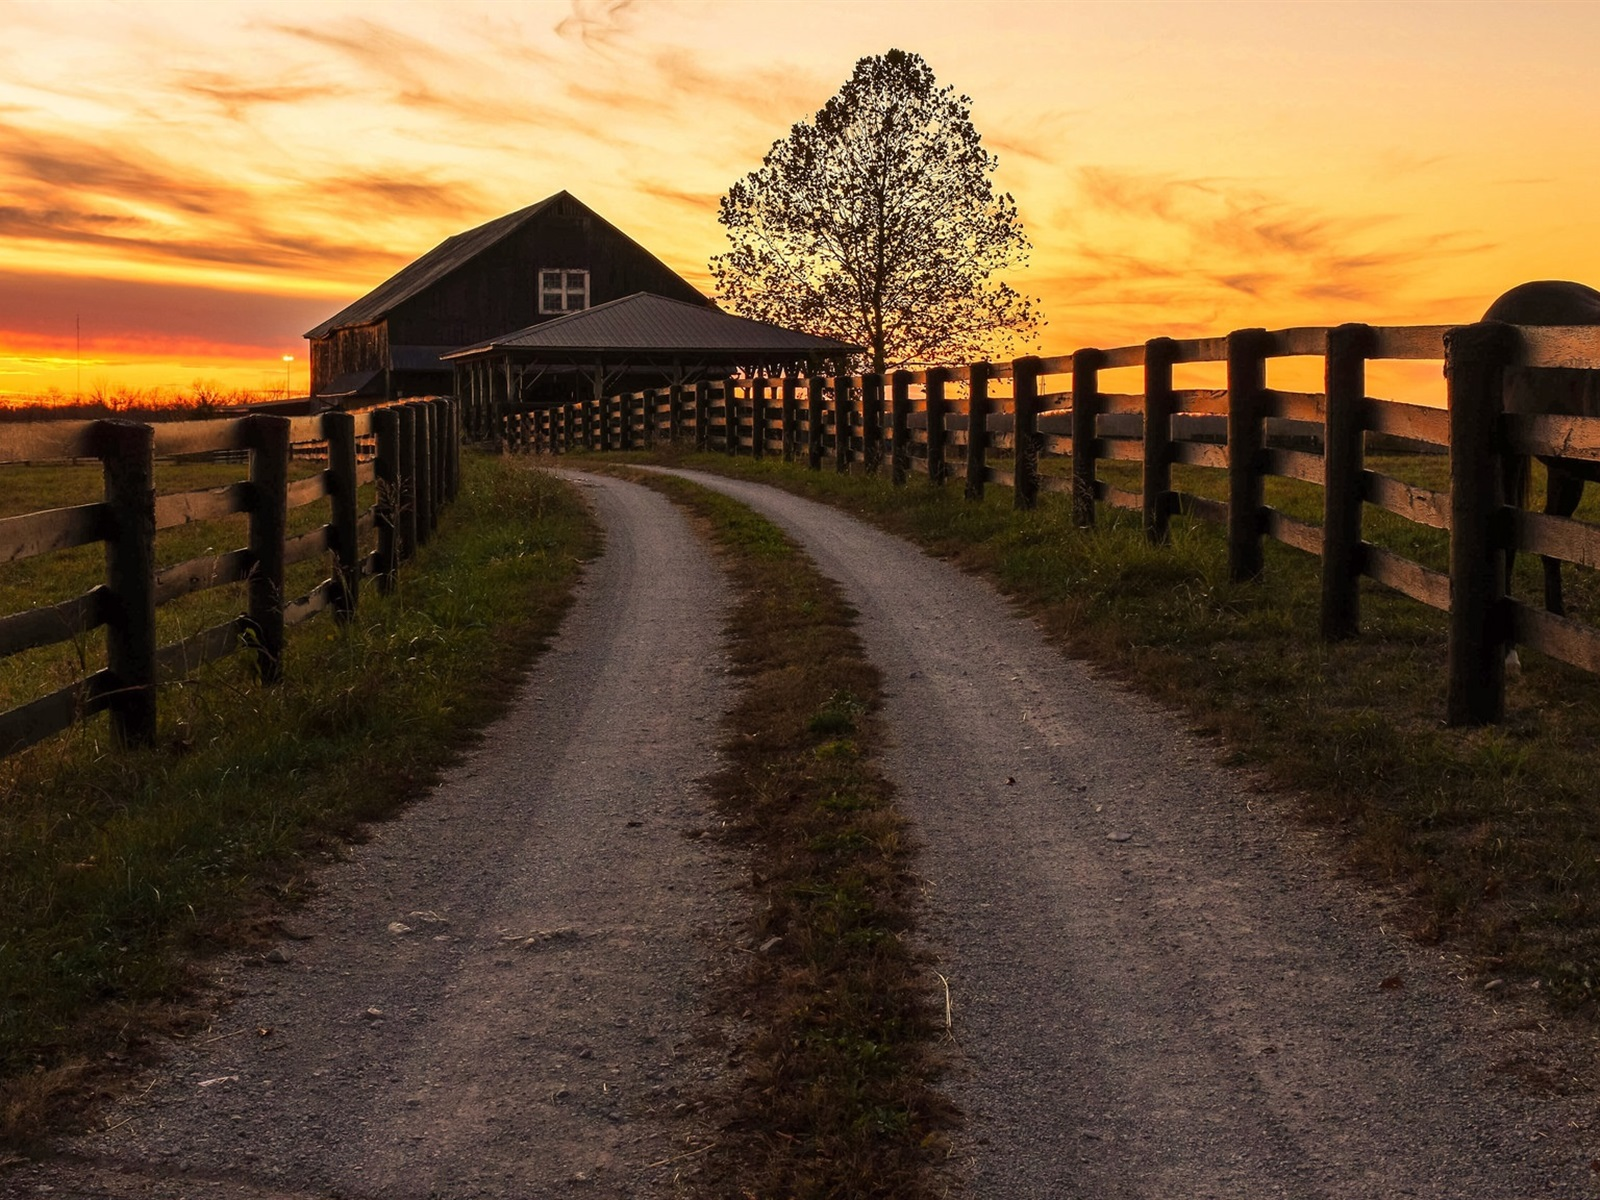 Wallpaper Road Fence Wood House Sunset 1920x1200 HD Picture Image